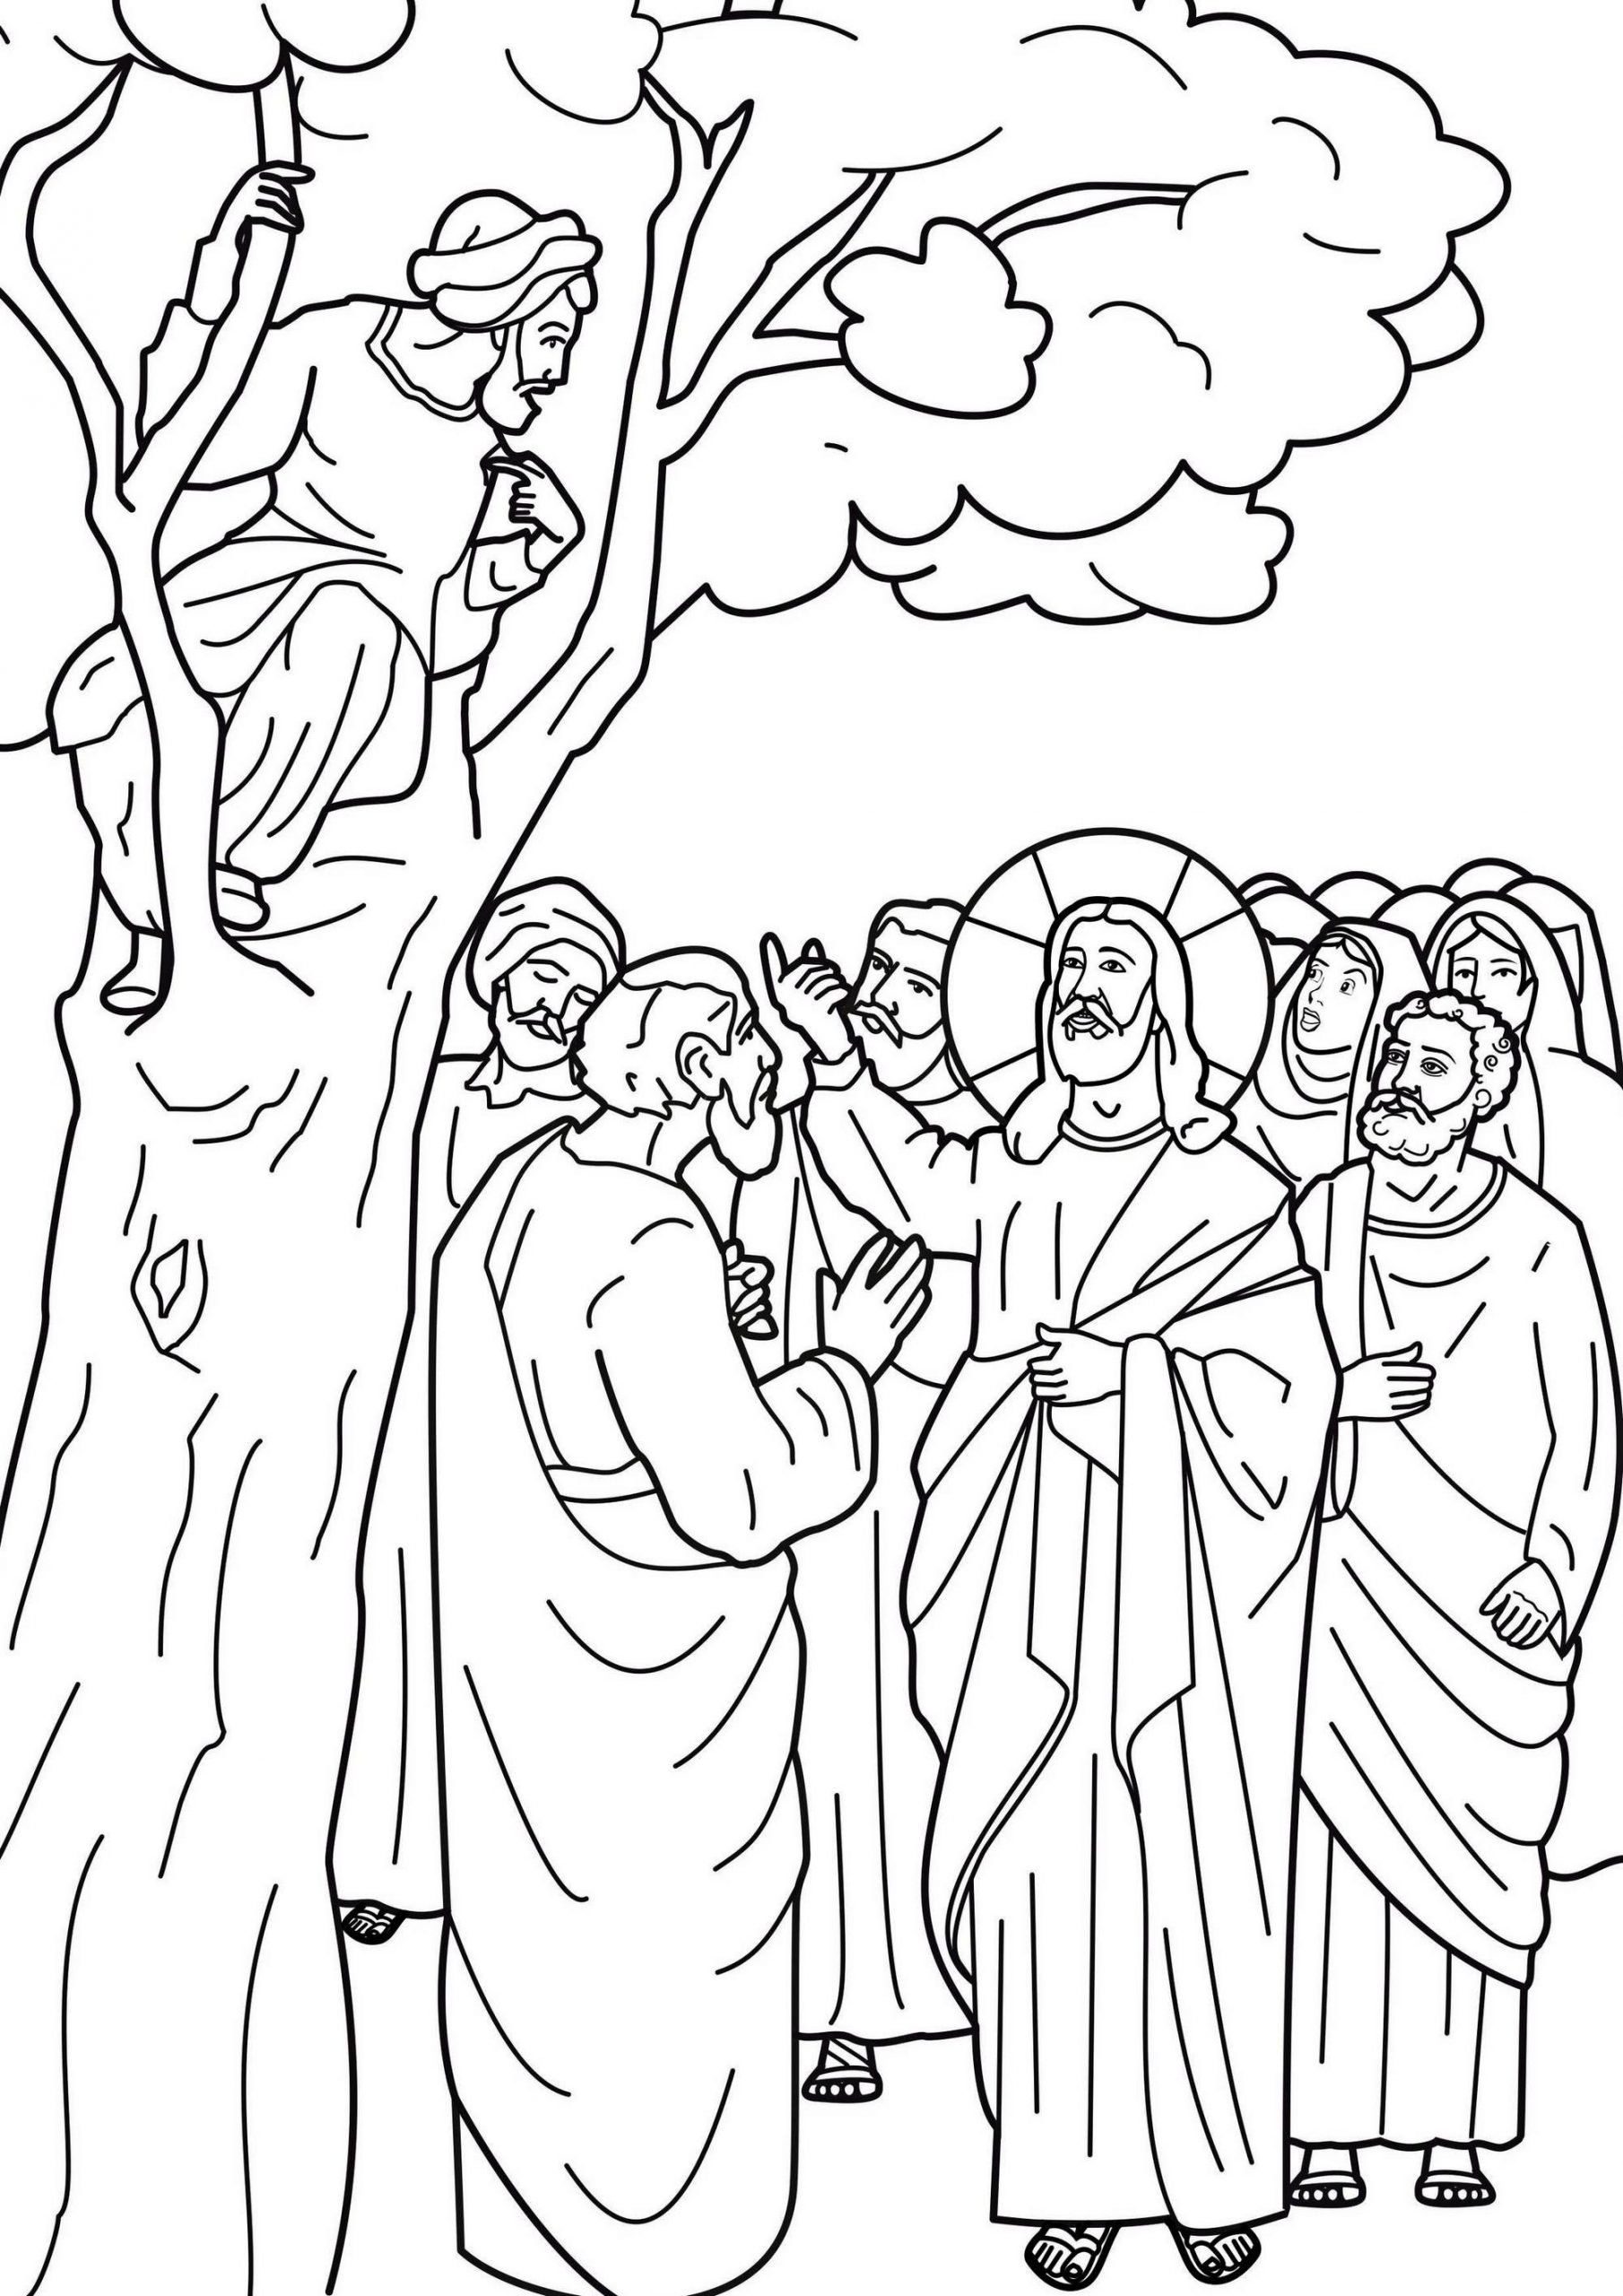 Zacchaeus Coloring Pages For Preschoolers Zacchaeus Coloring Page At Getdrawings In 2020 Zacchaeus Love Coloring Pages Bible Coloring Pages